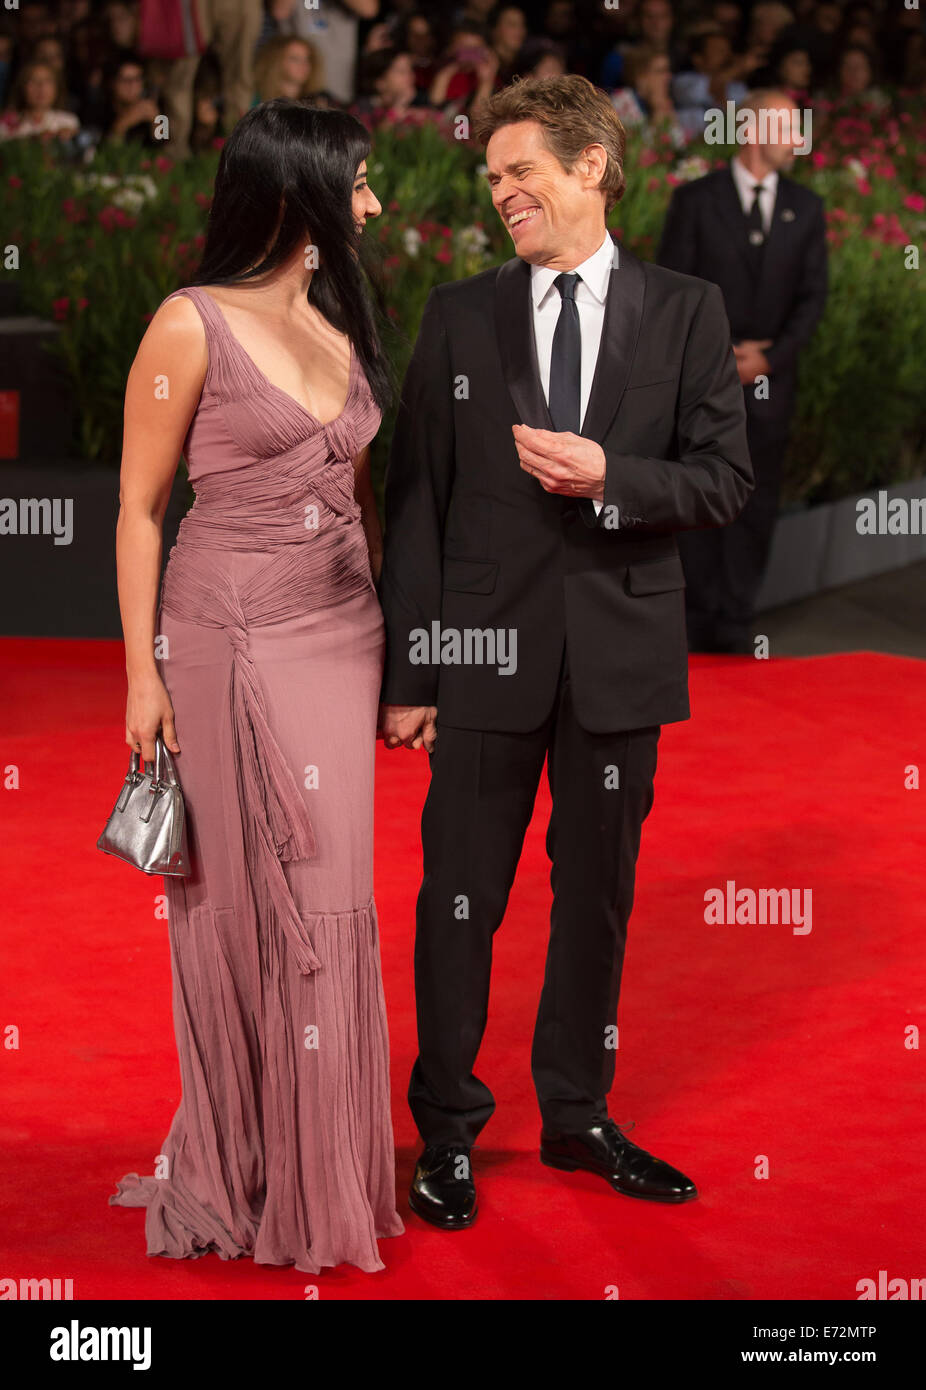 Willem Dafoe Pictures - Celebrity Sightings Day 4 - The ...  Willem Dafoe And Wife